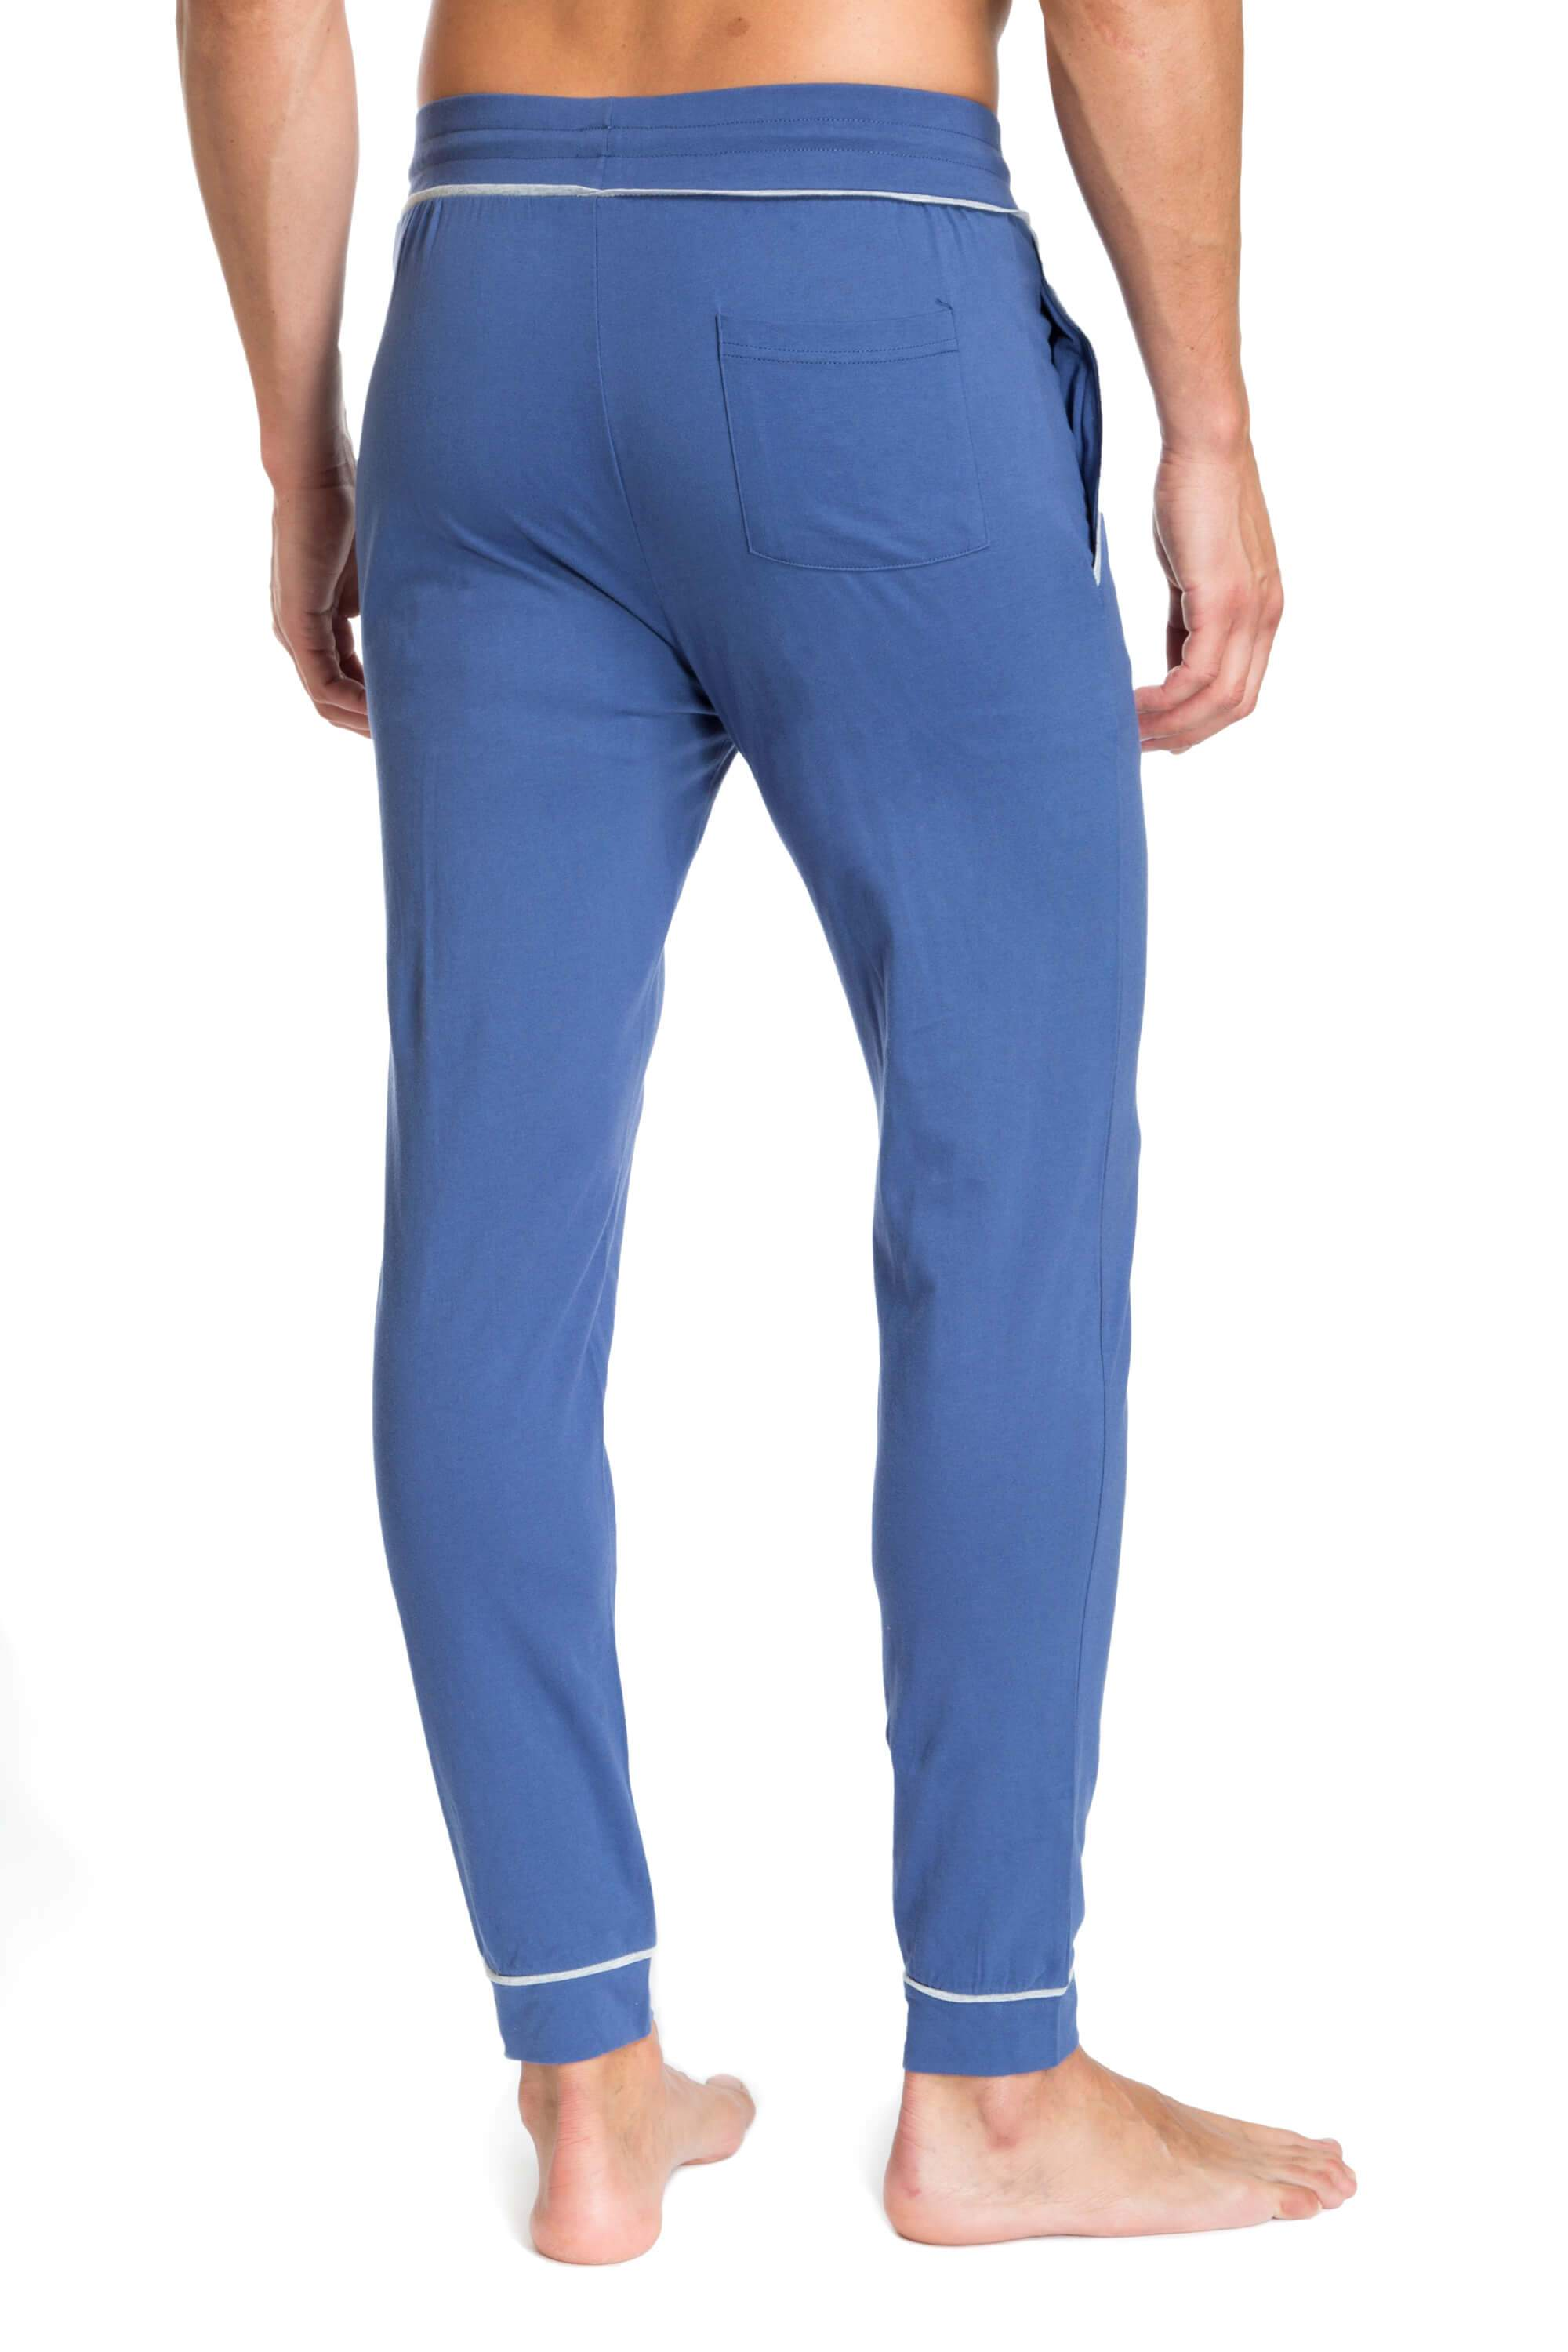 Sky Blue Designer Joggers for Men JLLP1-400 - Back - Jared Lang